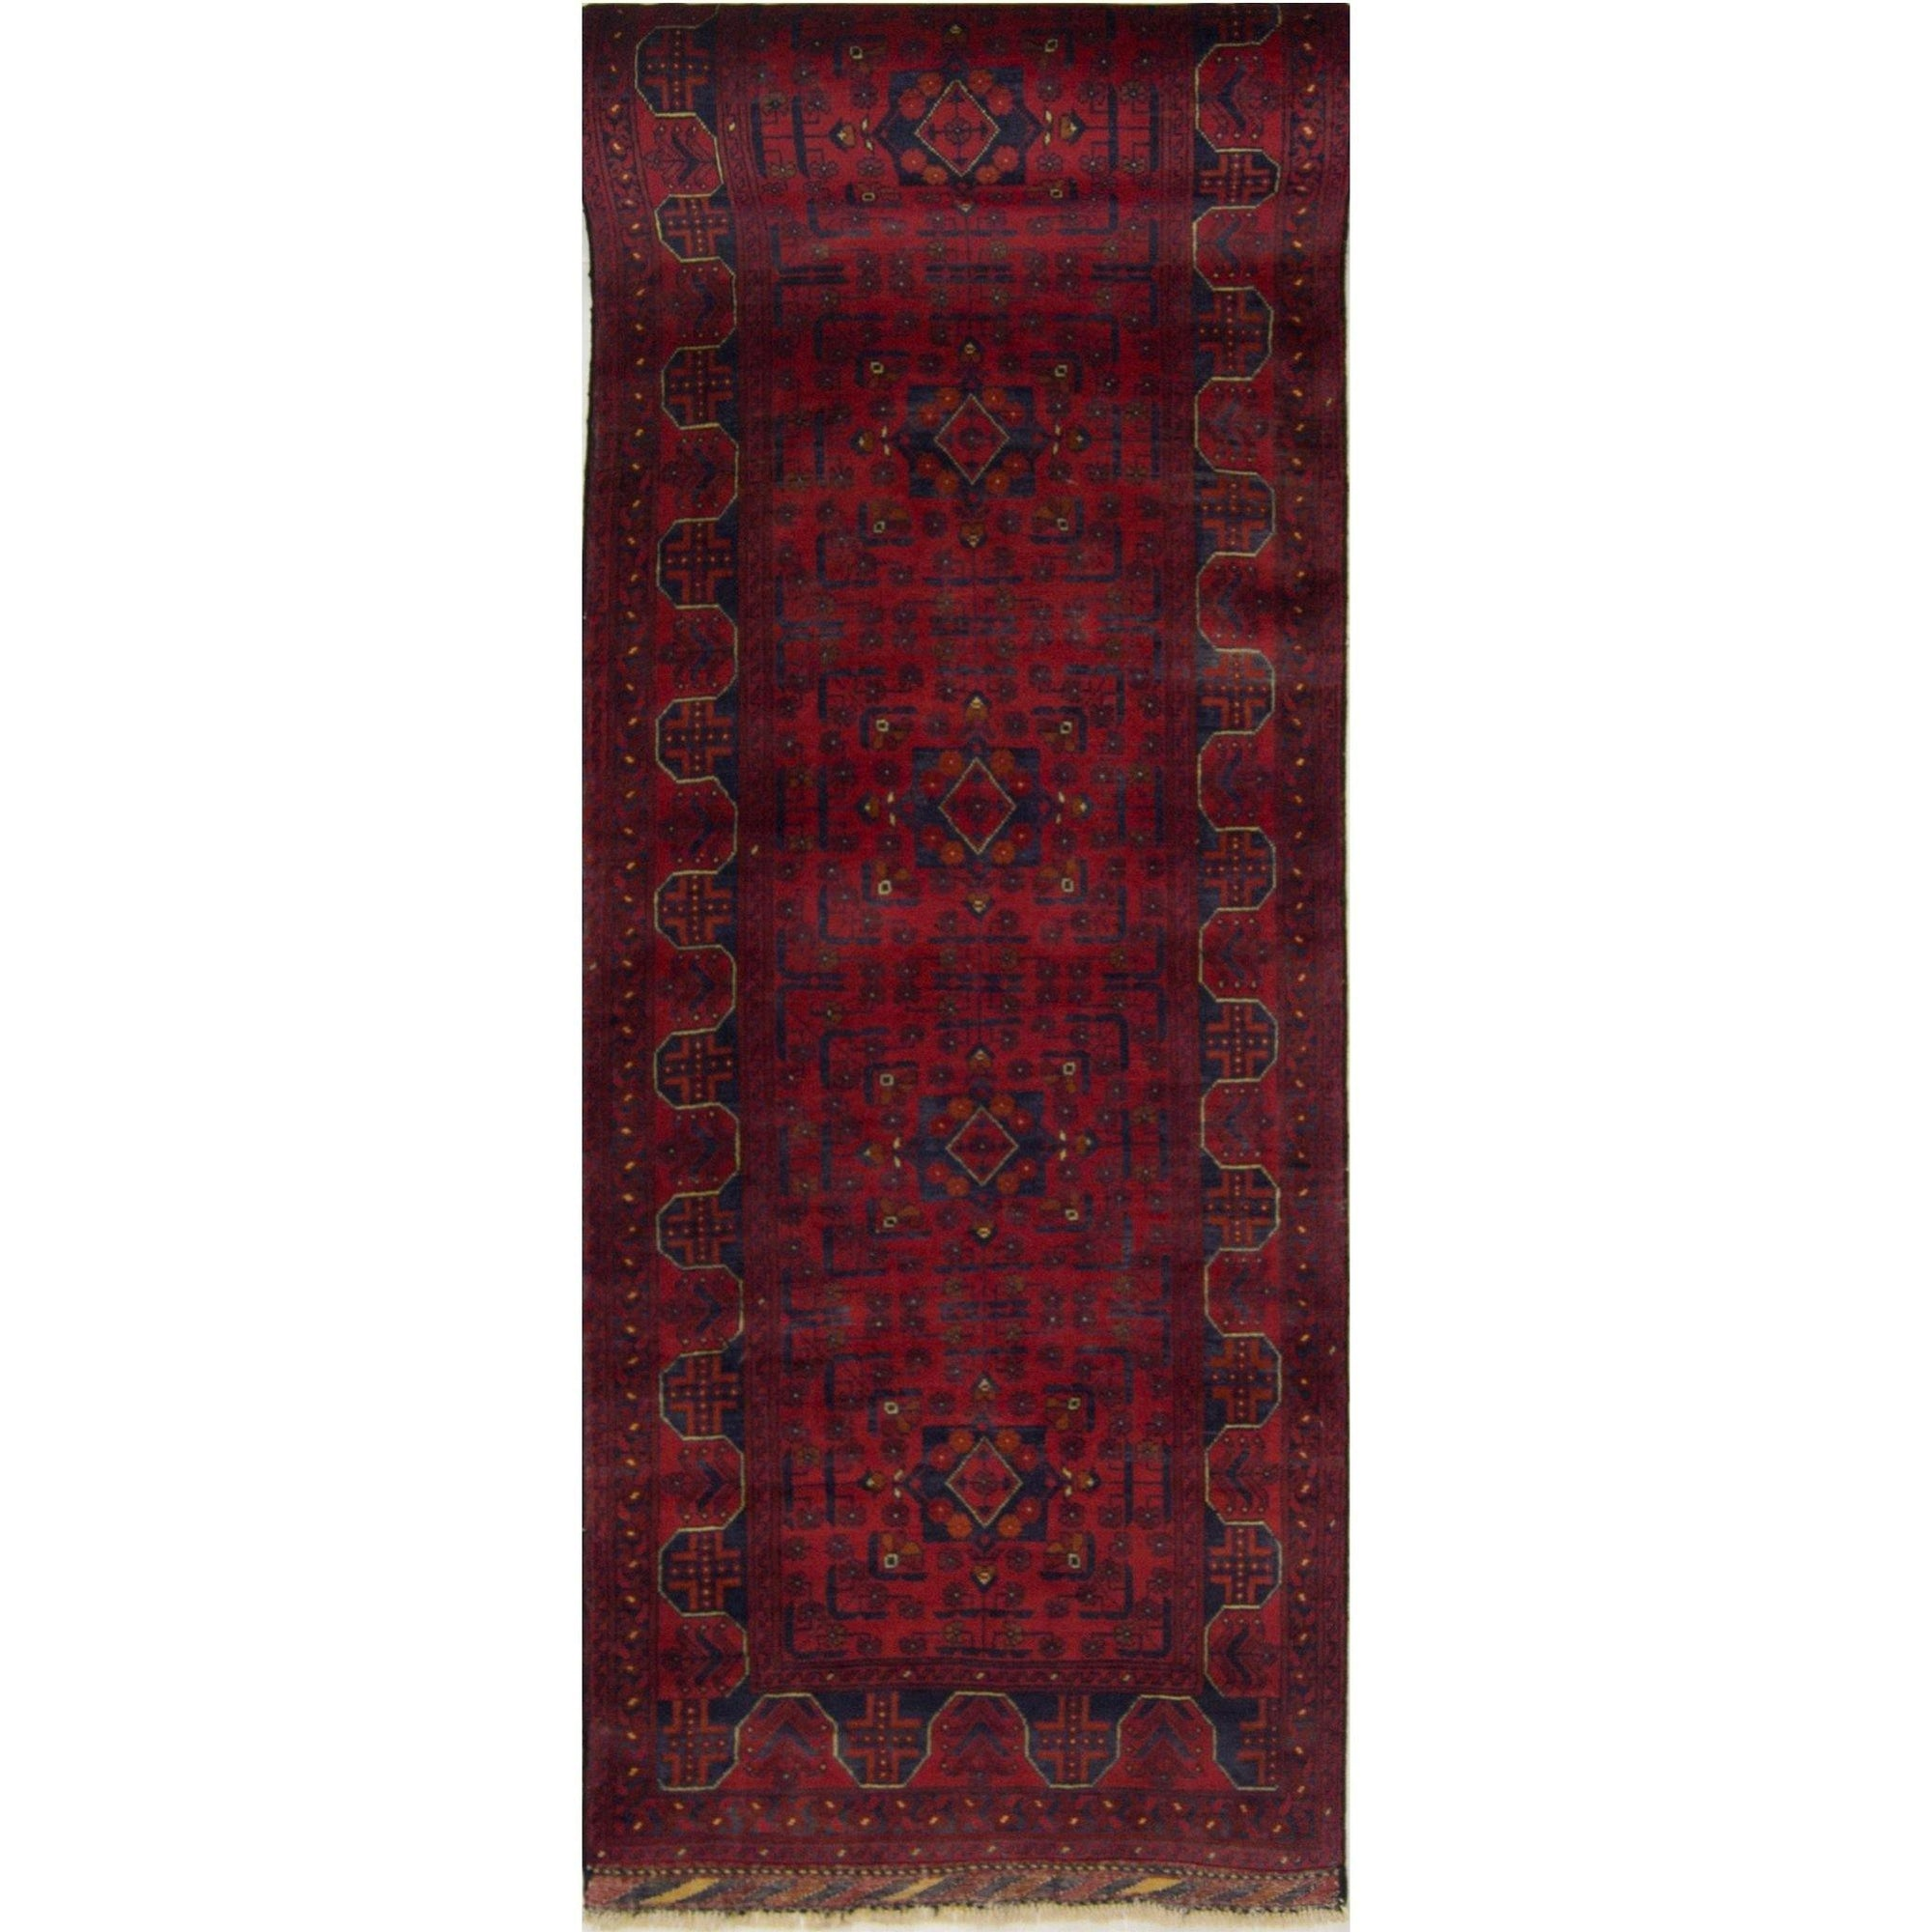 Fine 100% Wool Khal Mohammadi Runner 76cm x 661cm Persian-Rug | House-of-Haghi | NewMarket | Auckland | NZ | Handmade Persian Rugs | Hand Knotted Persian Rugs